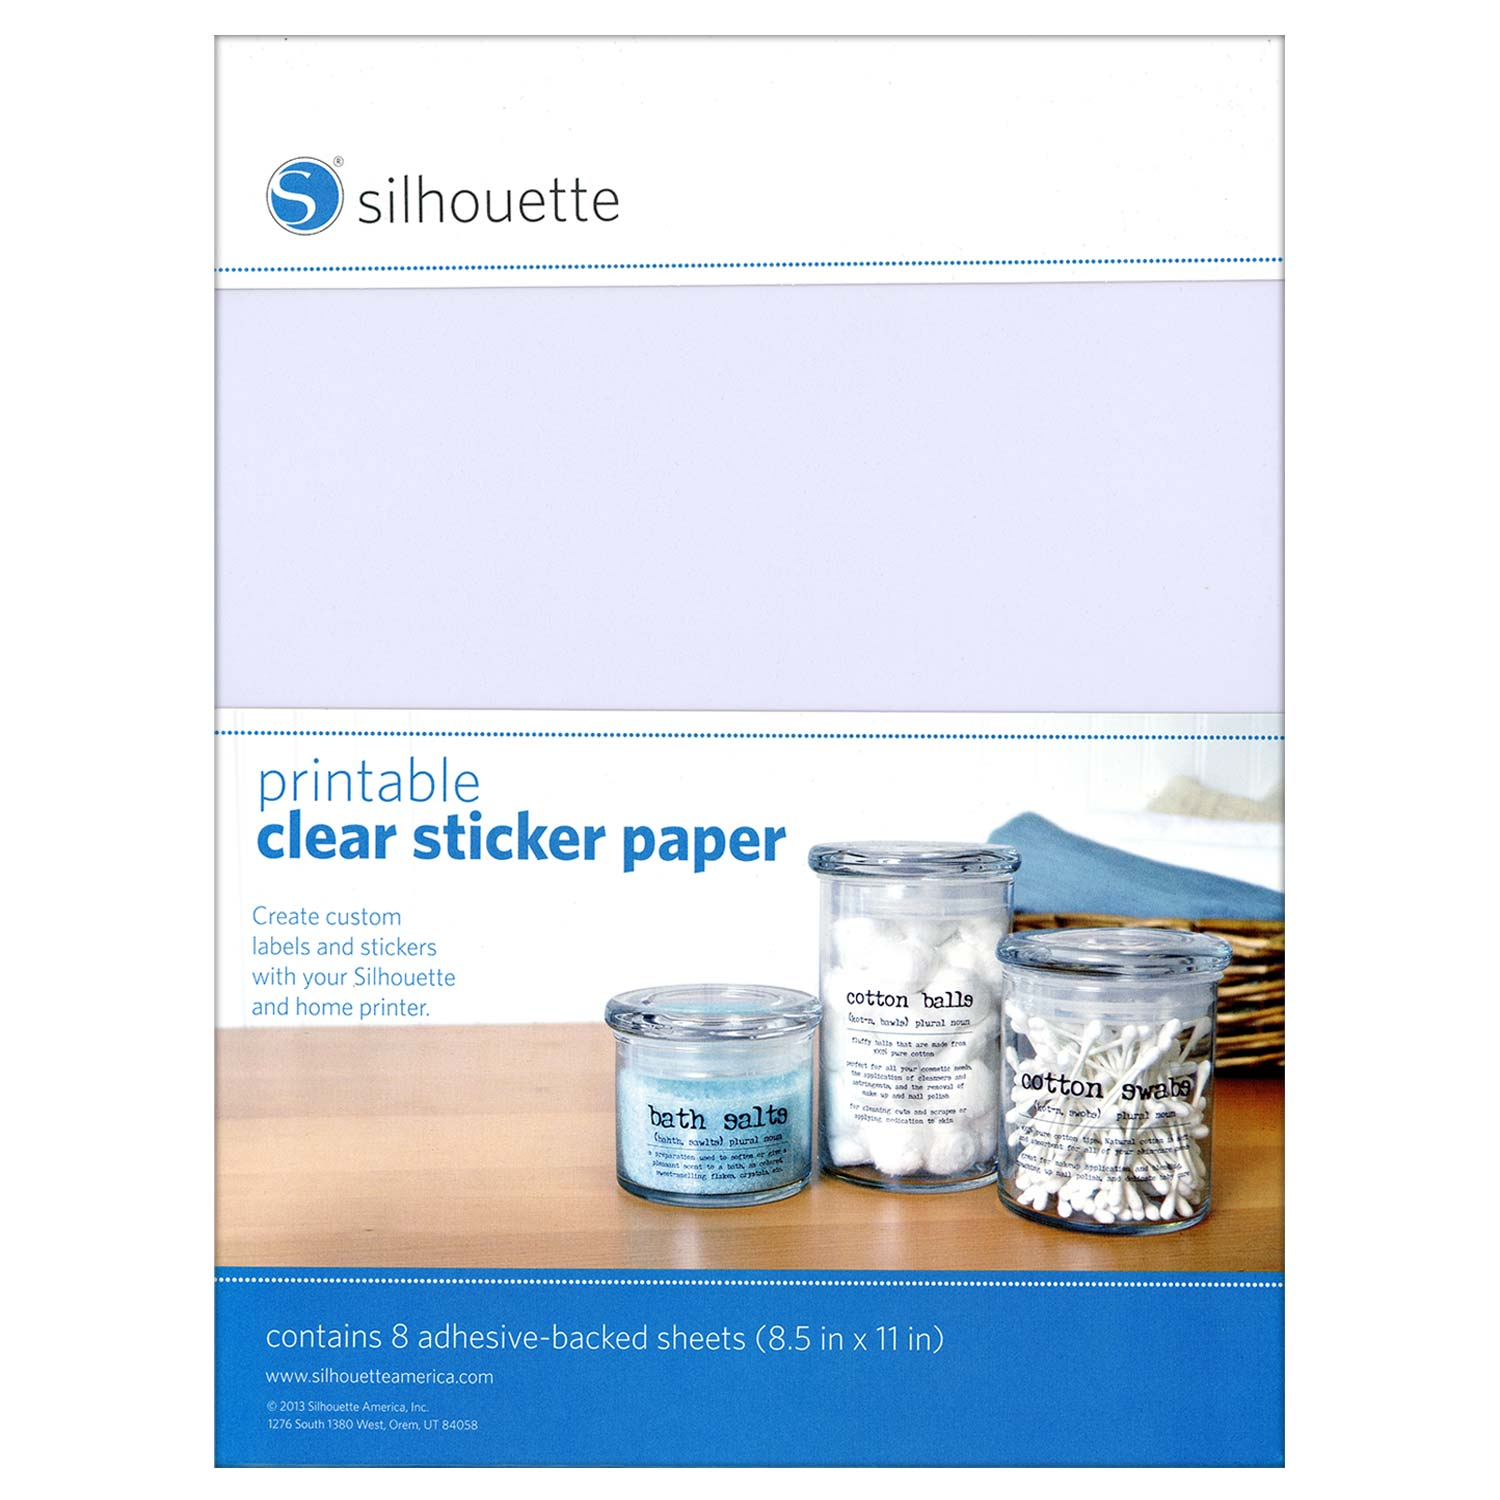 Enterprising image with clear printable sticker paper